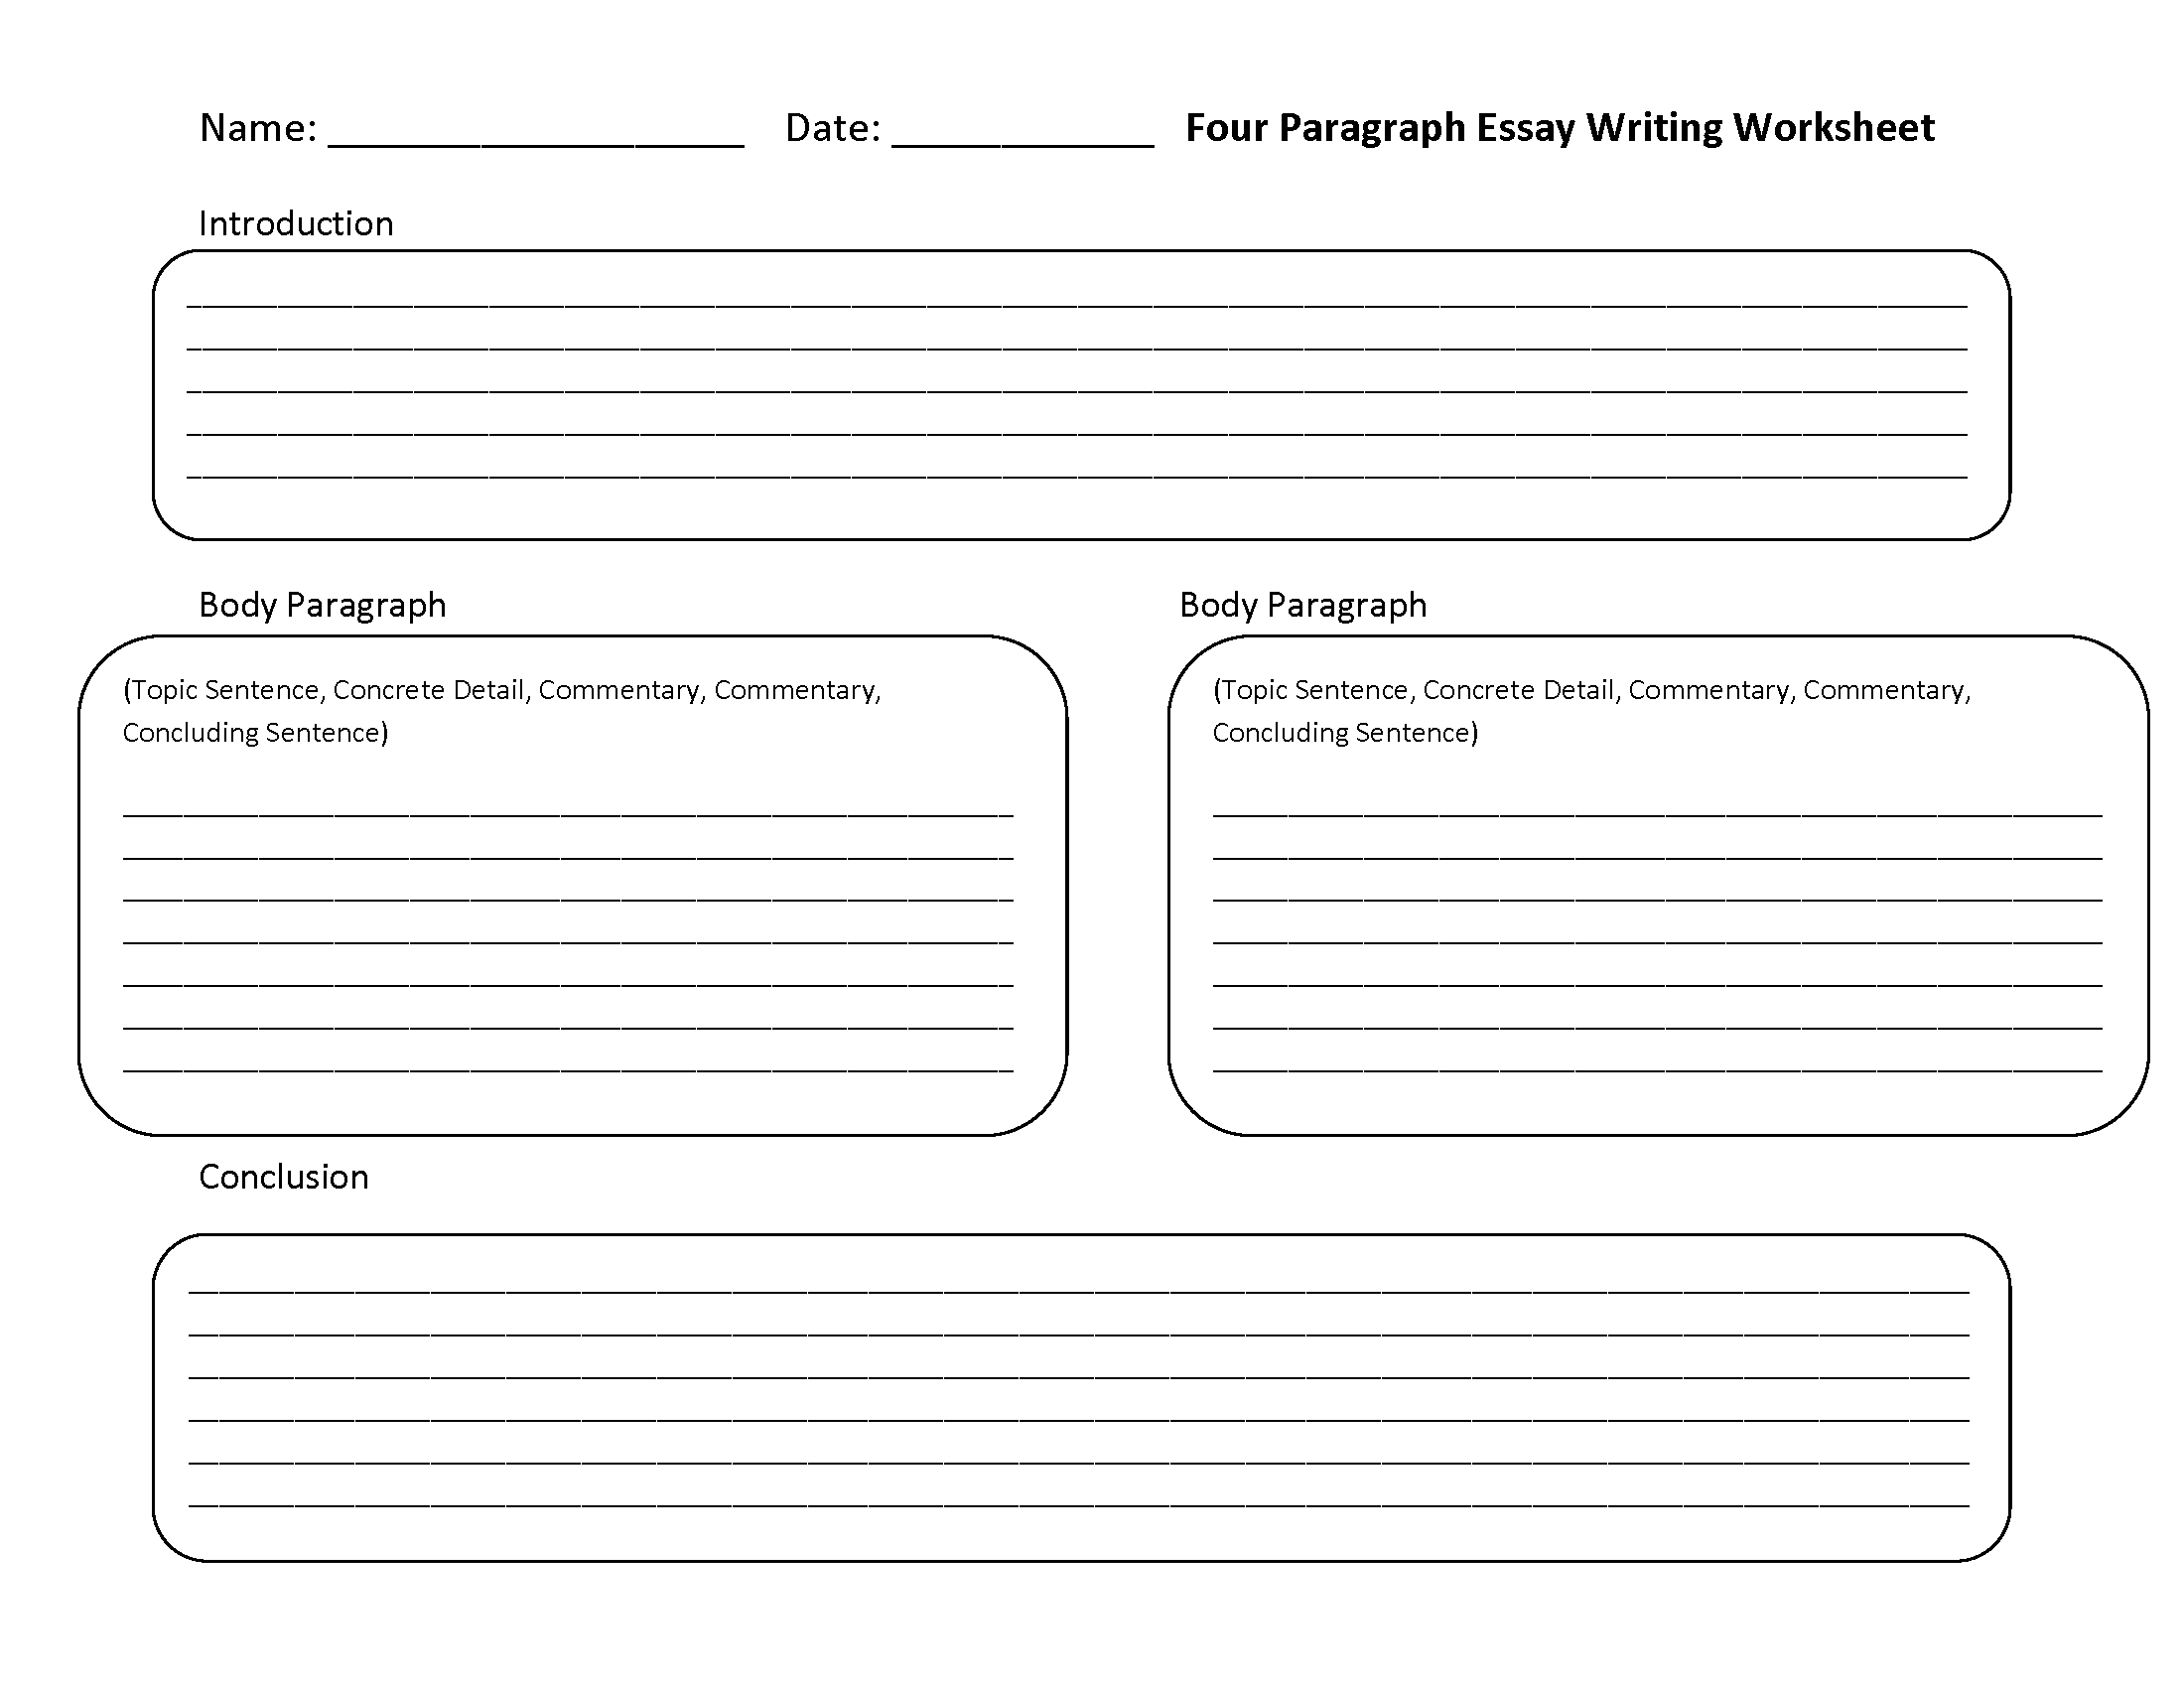 worksheet Step Four Worksheets writing worksheets essay four paragraph worksheets